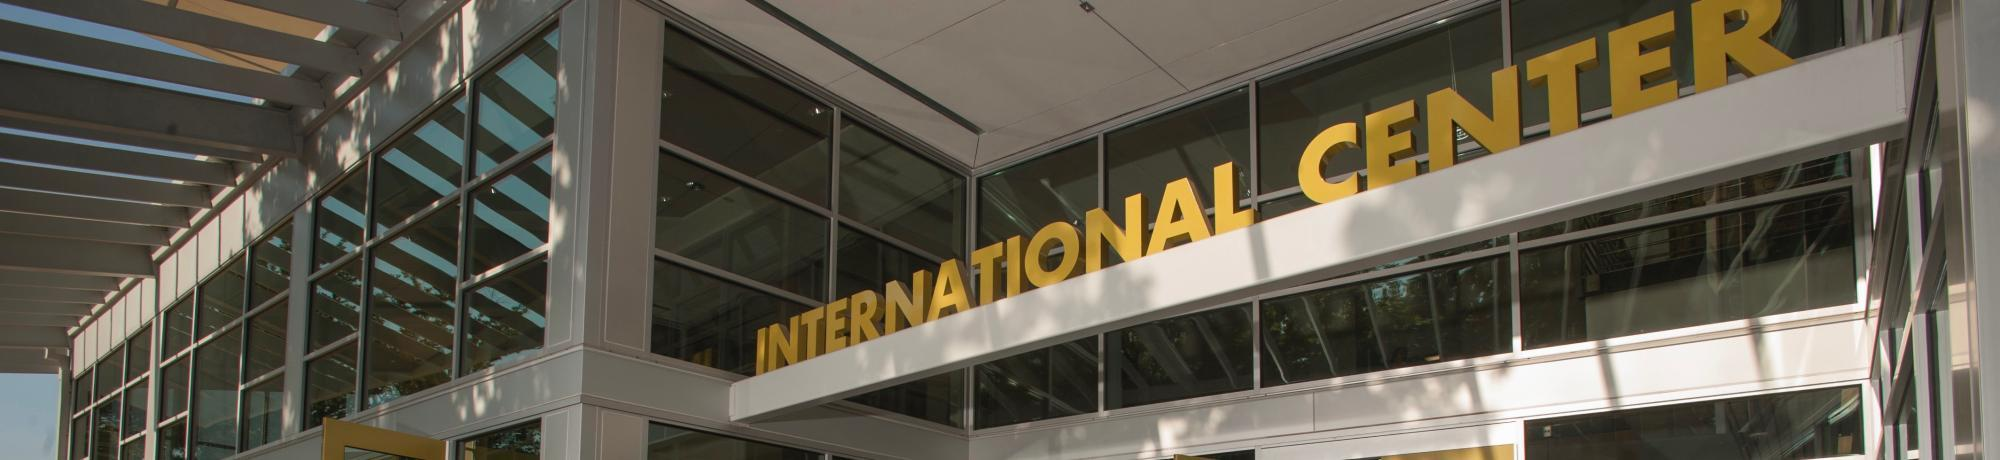 Image Header - International Center